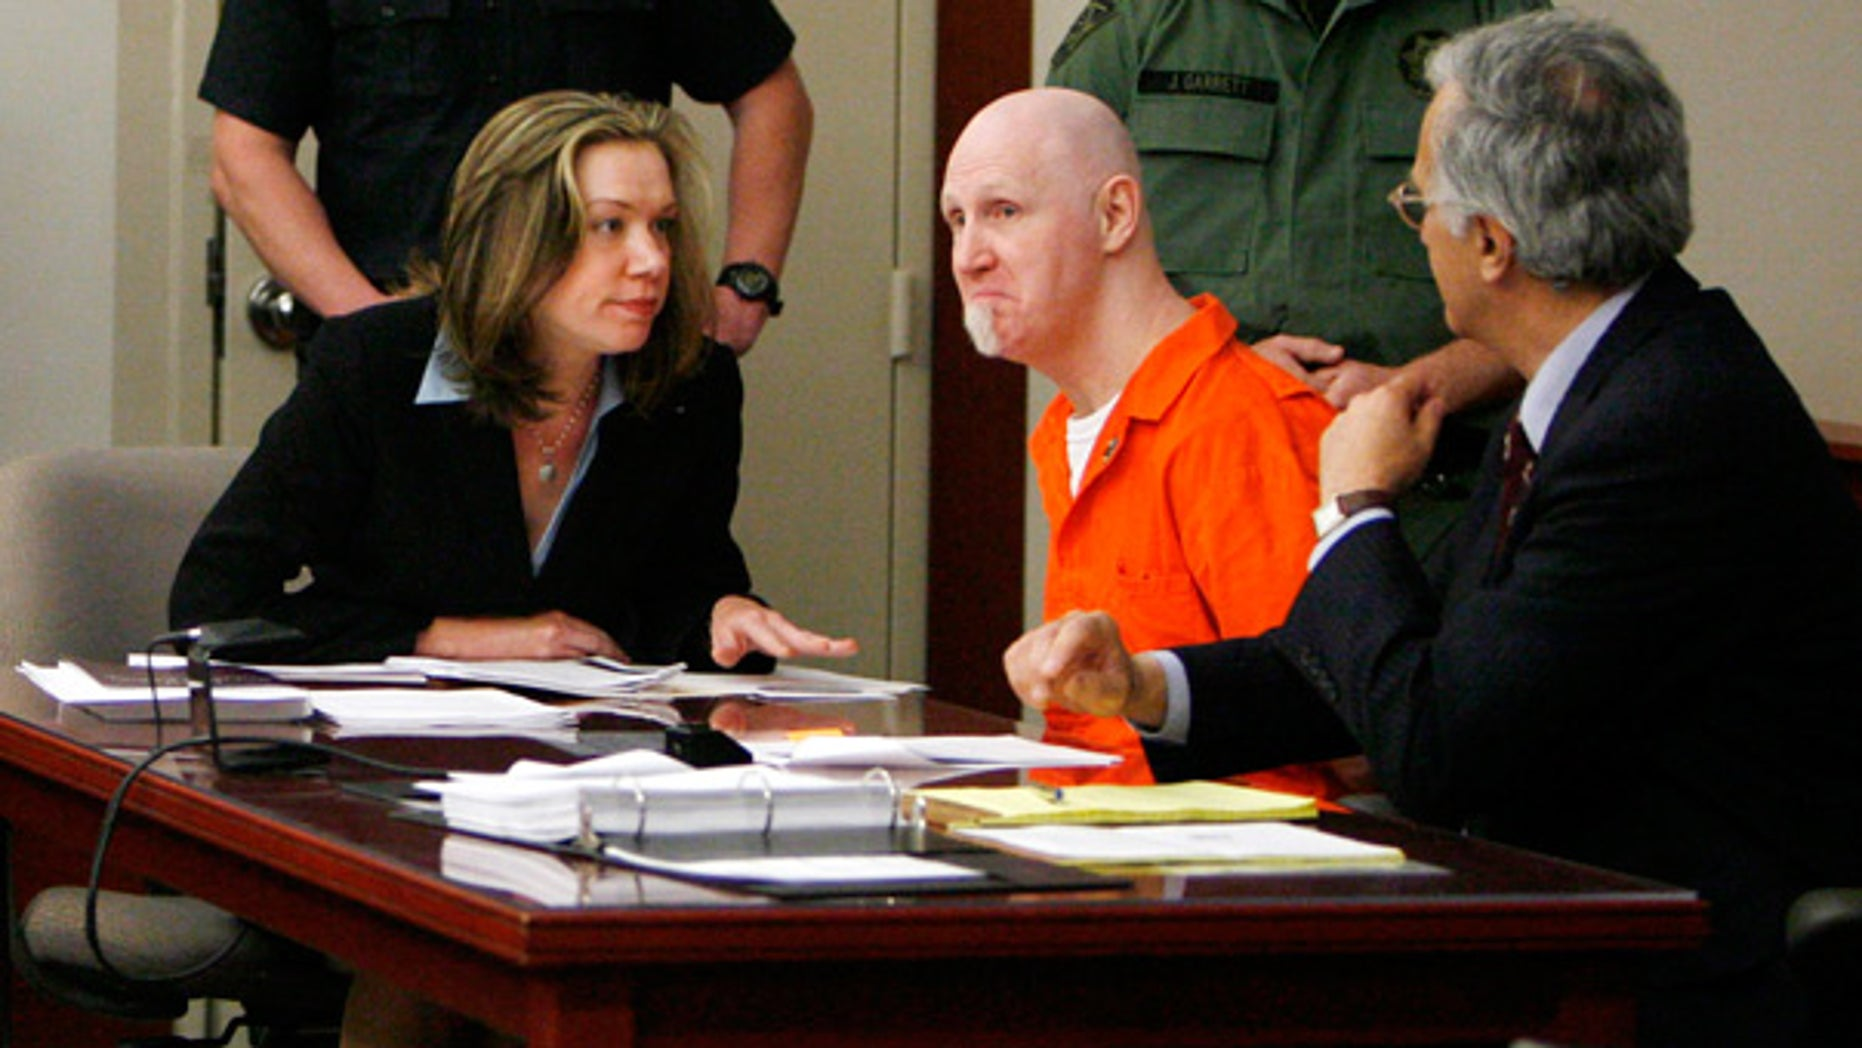 April 23: Convicted murderer Ronnie Gardner sits with his defense team at the Matheson Courthouse in Salt Lake City, Utah.